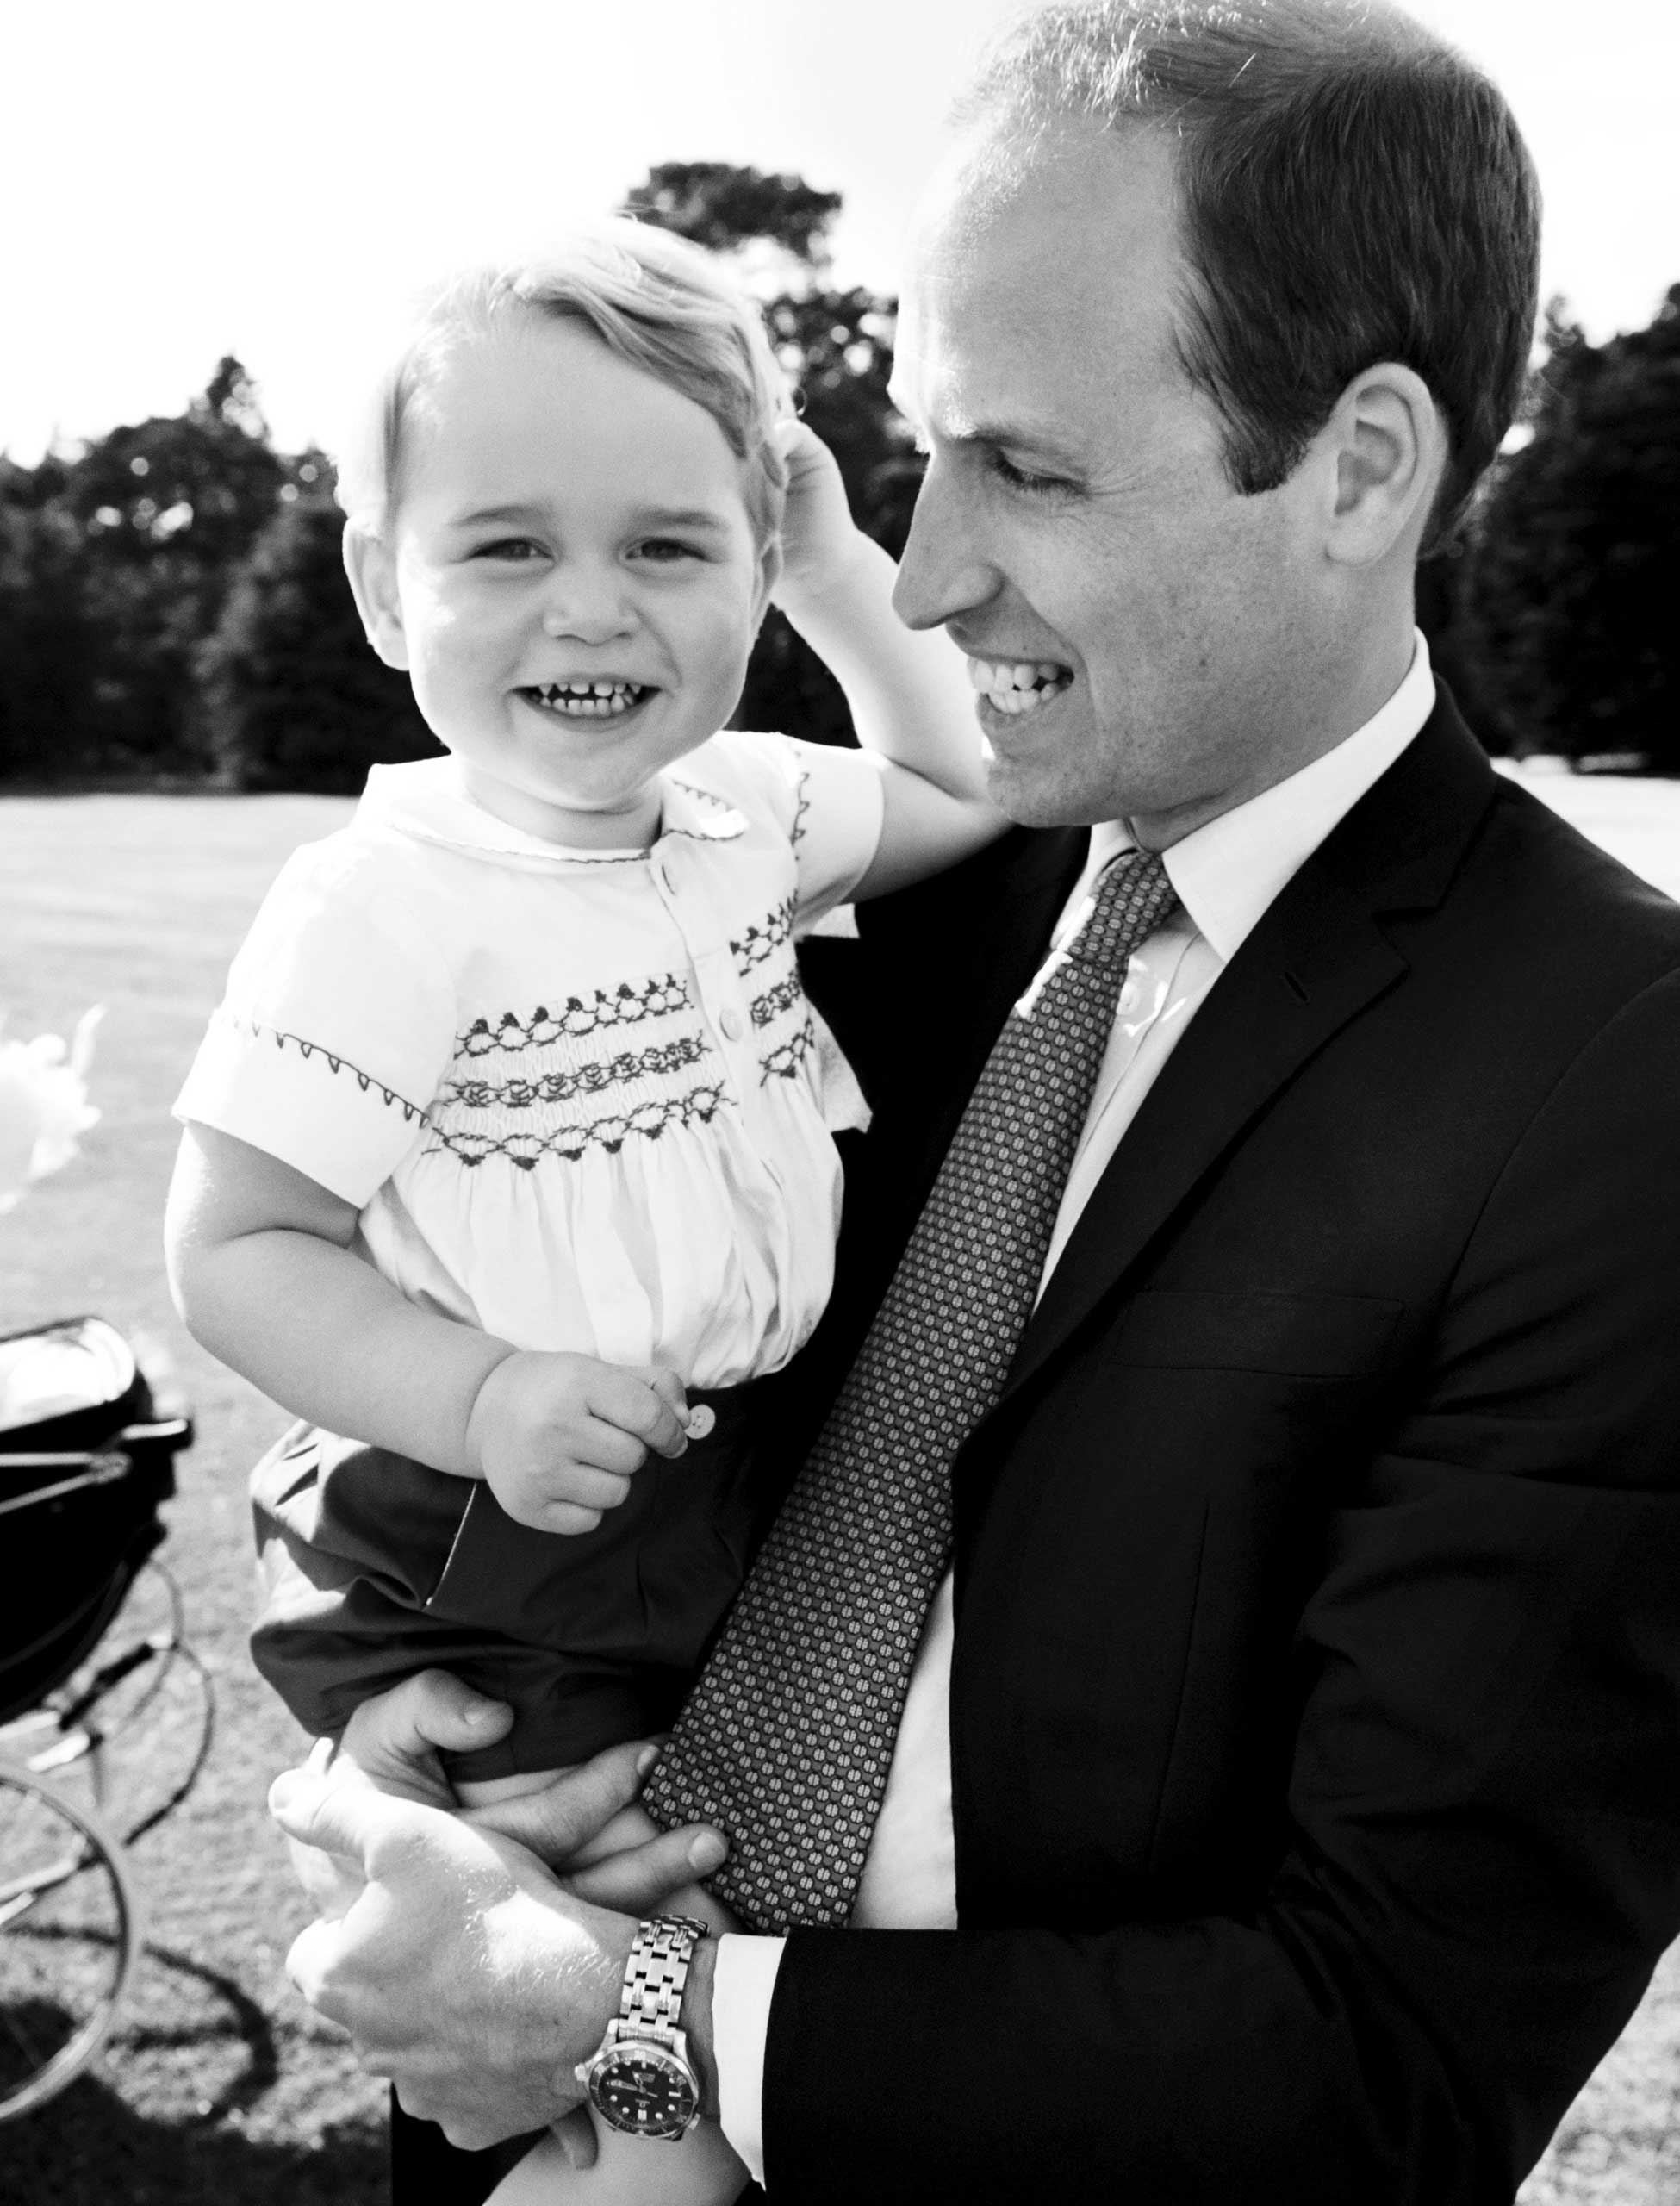 Britain's Prince William holds his son, Prince George, after the christening of Princess Charlotte of Cambridge at Sandringham, United Kingdom.